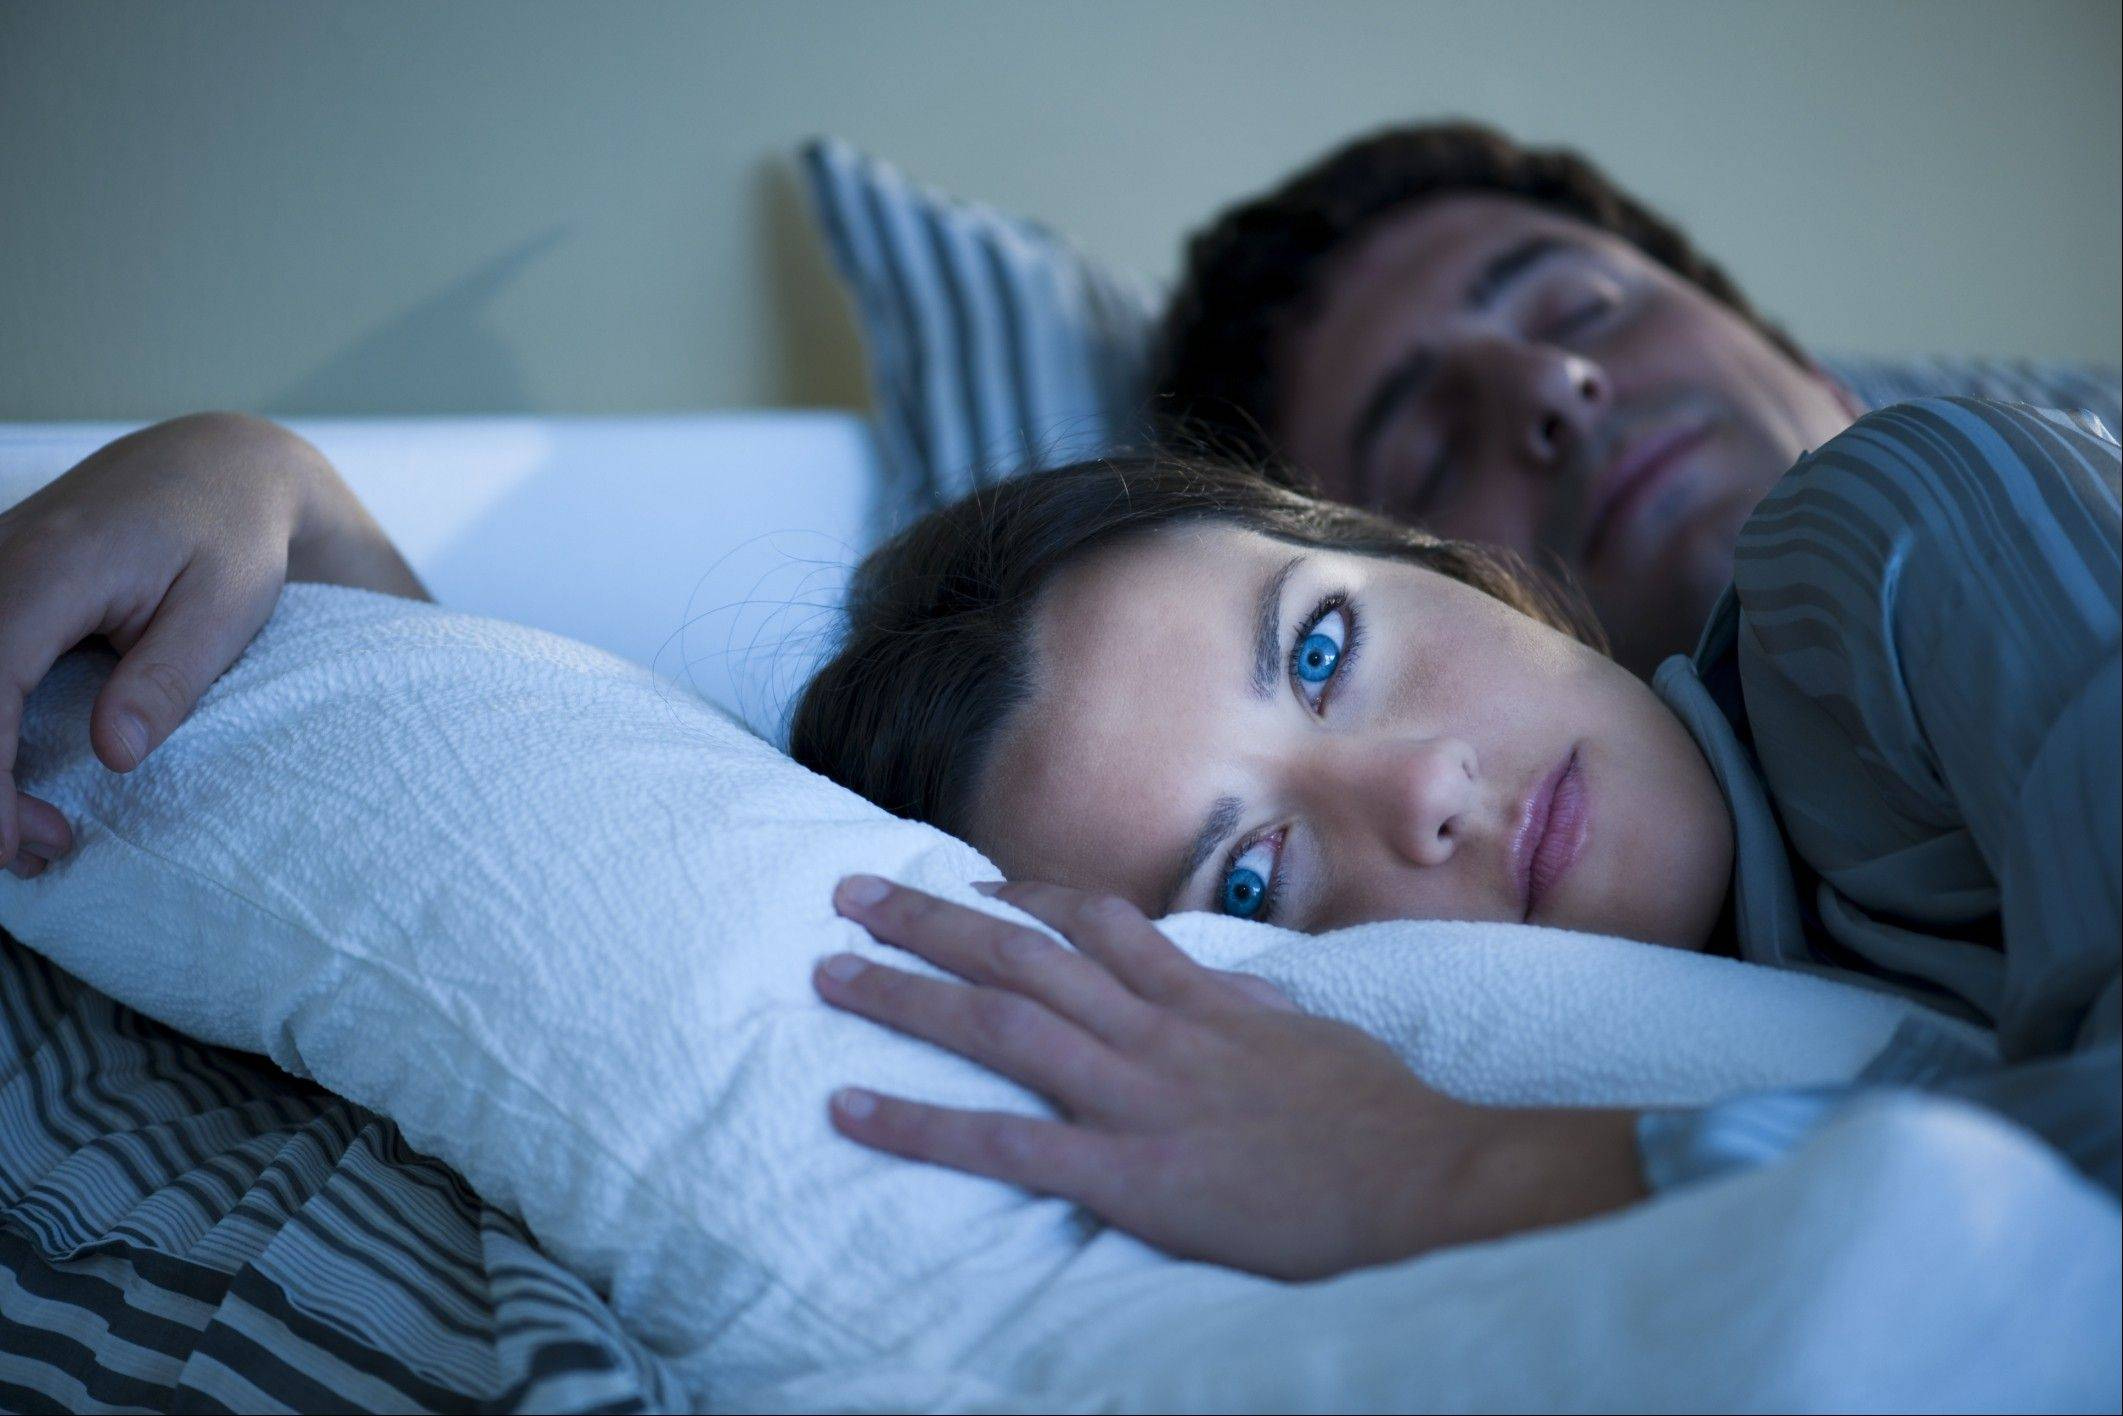 Don't stay in bed when you can't sleep, experts say.